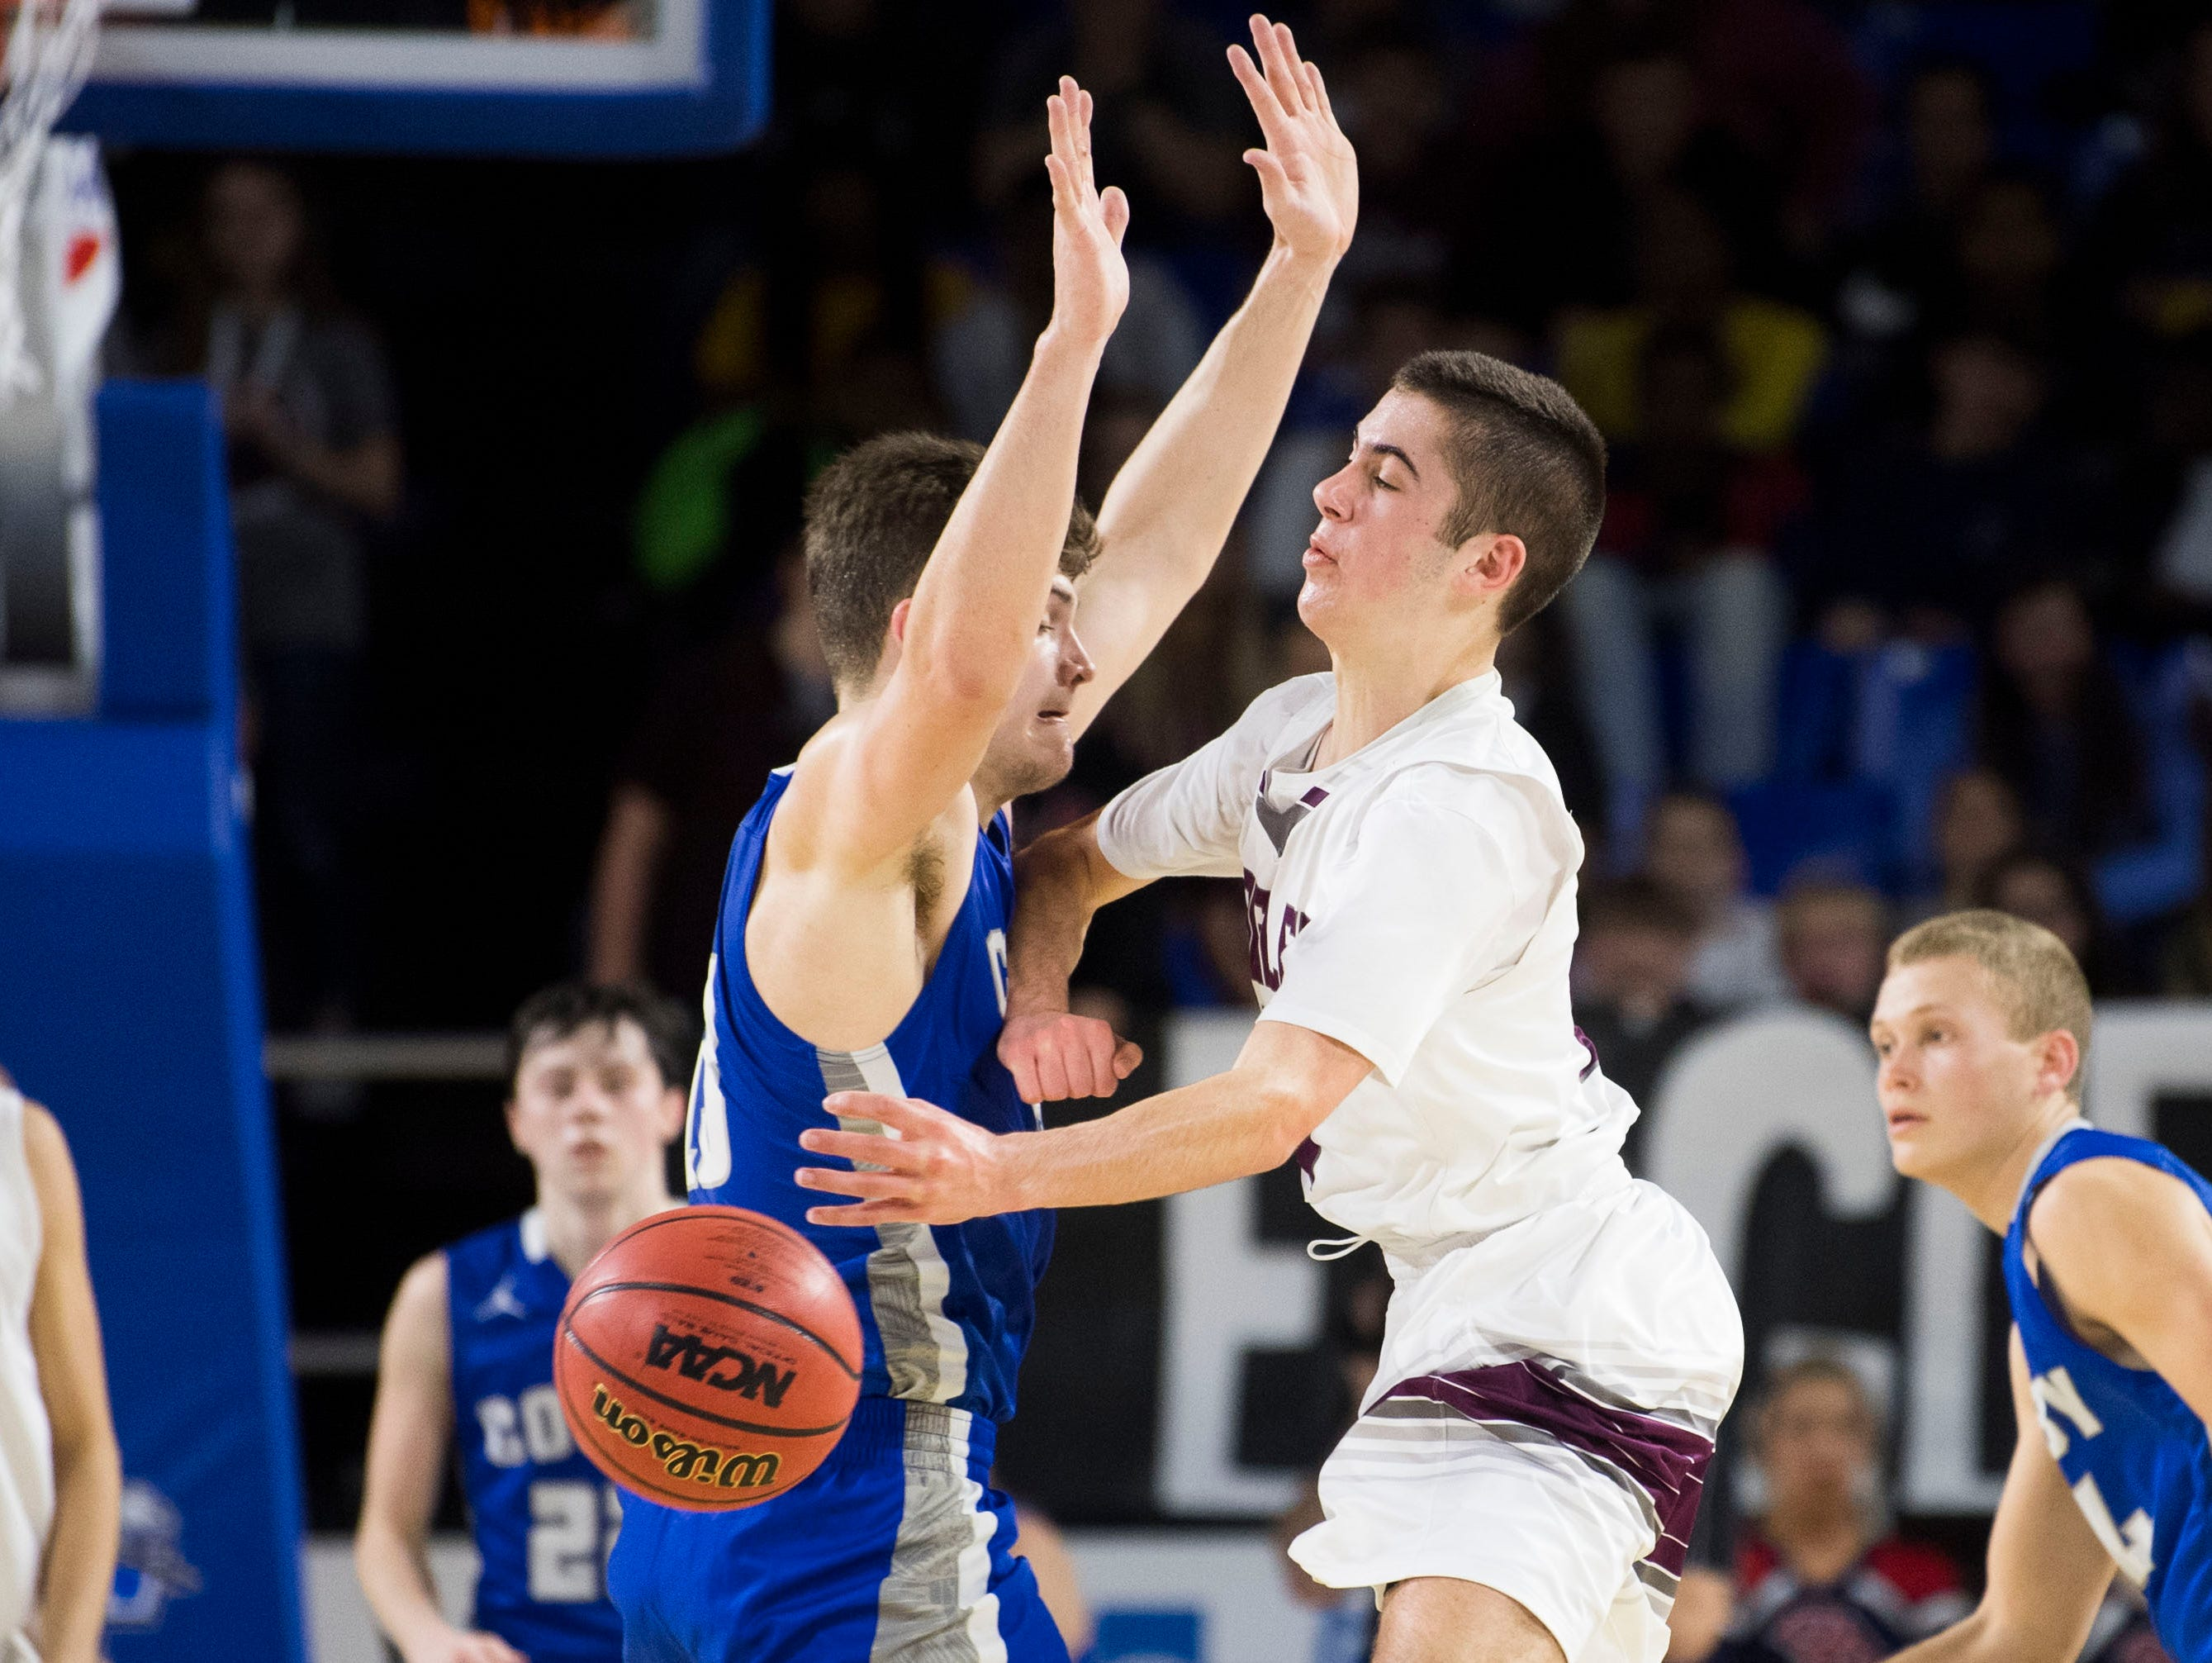 Eagleville's Ryley McClaran (3) passes the ball around Cosby's Austin McKeehan (13) during a TSSAA A state quarterfinal game between Eagleville and Cosby at the Murphy Center in Murfreesboro, Thursday, March 14, 2019. Eagleville defeated Cosby 66-55.